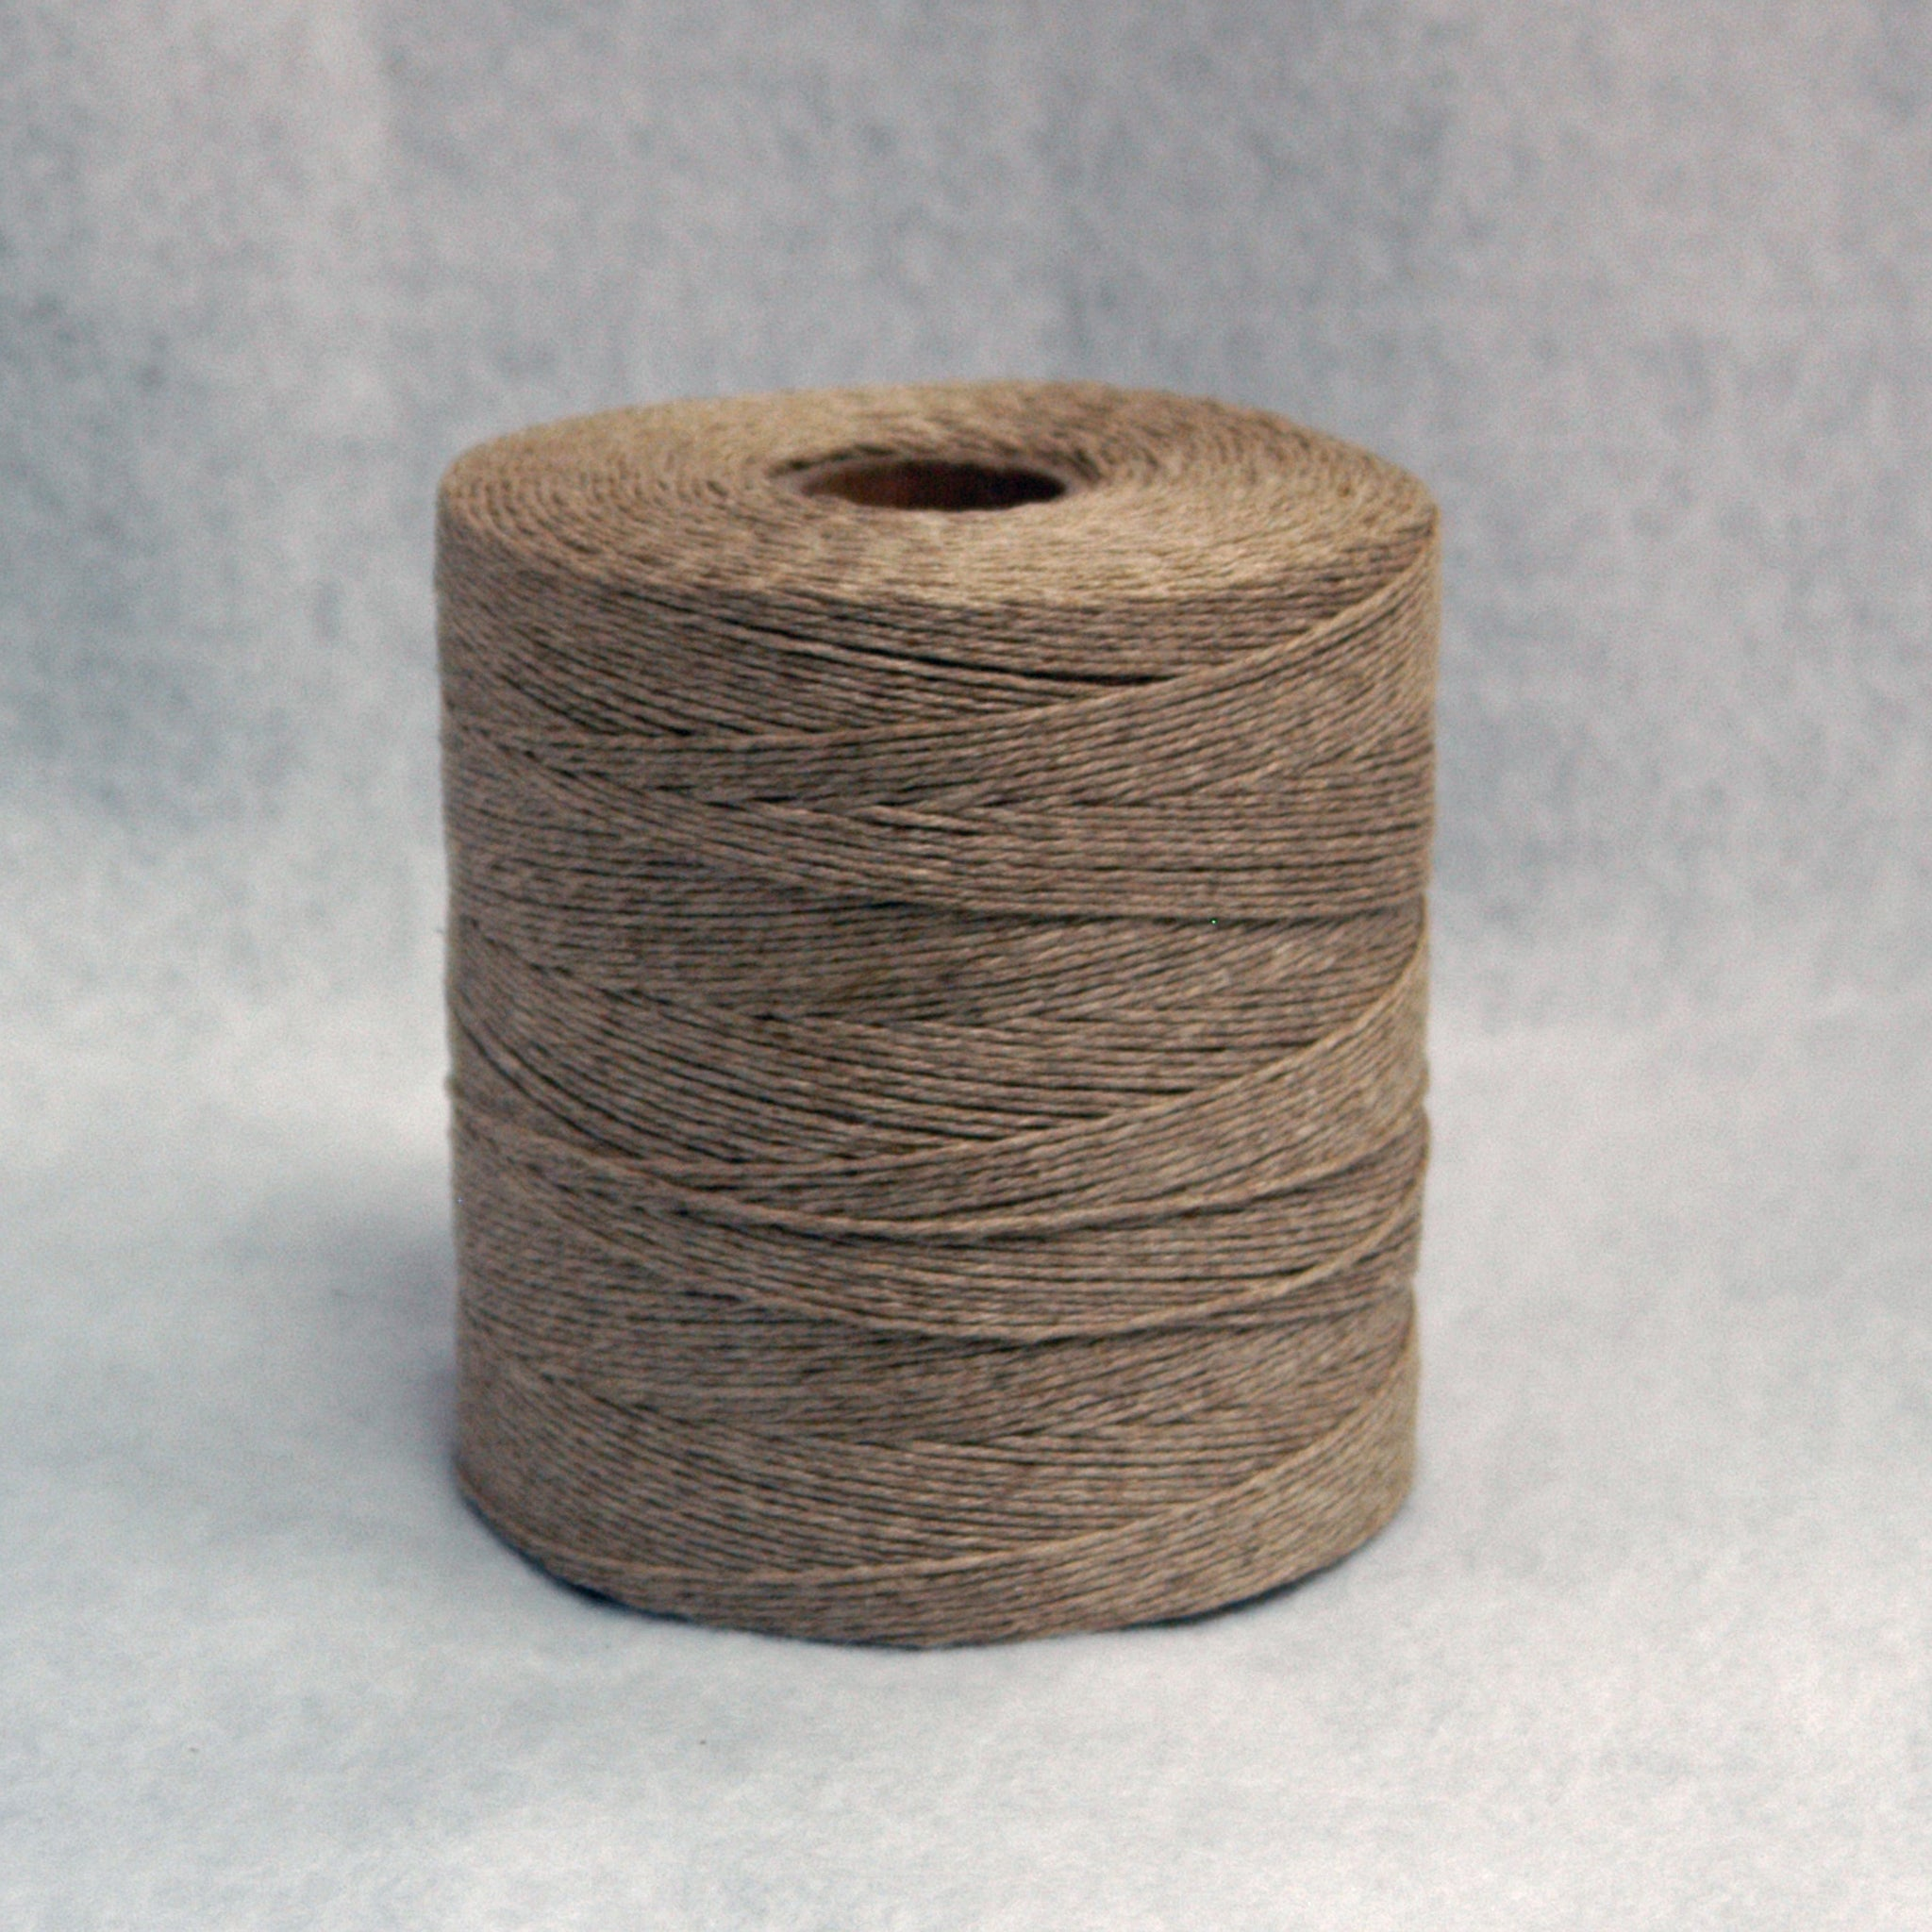 Domestic Six Strand Natural Flax Twine - Bulk Case of 24 Spools